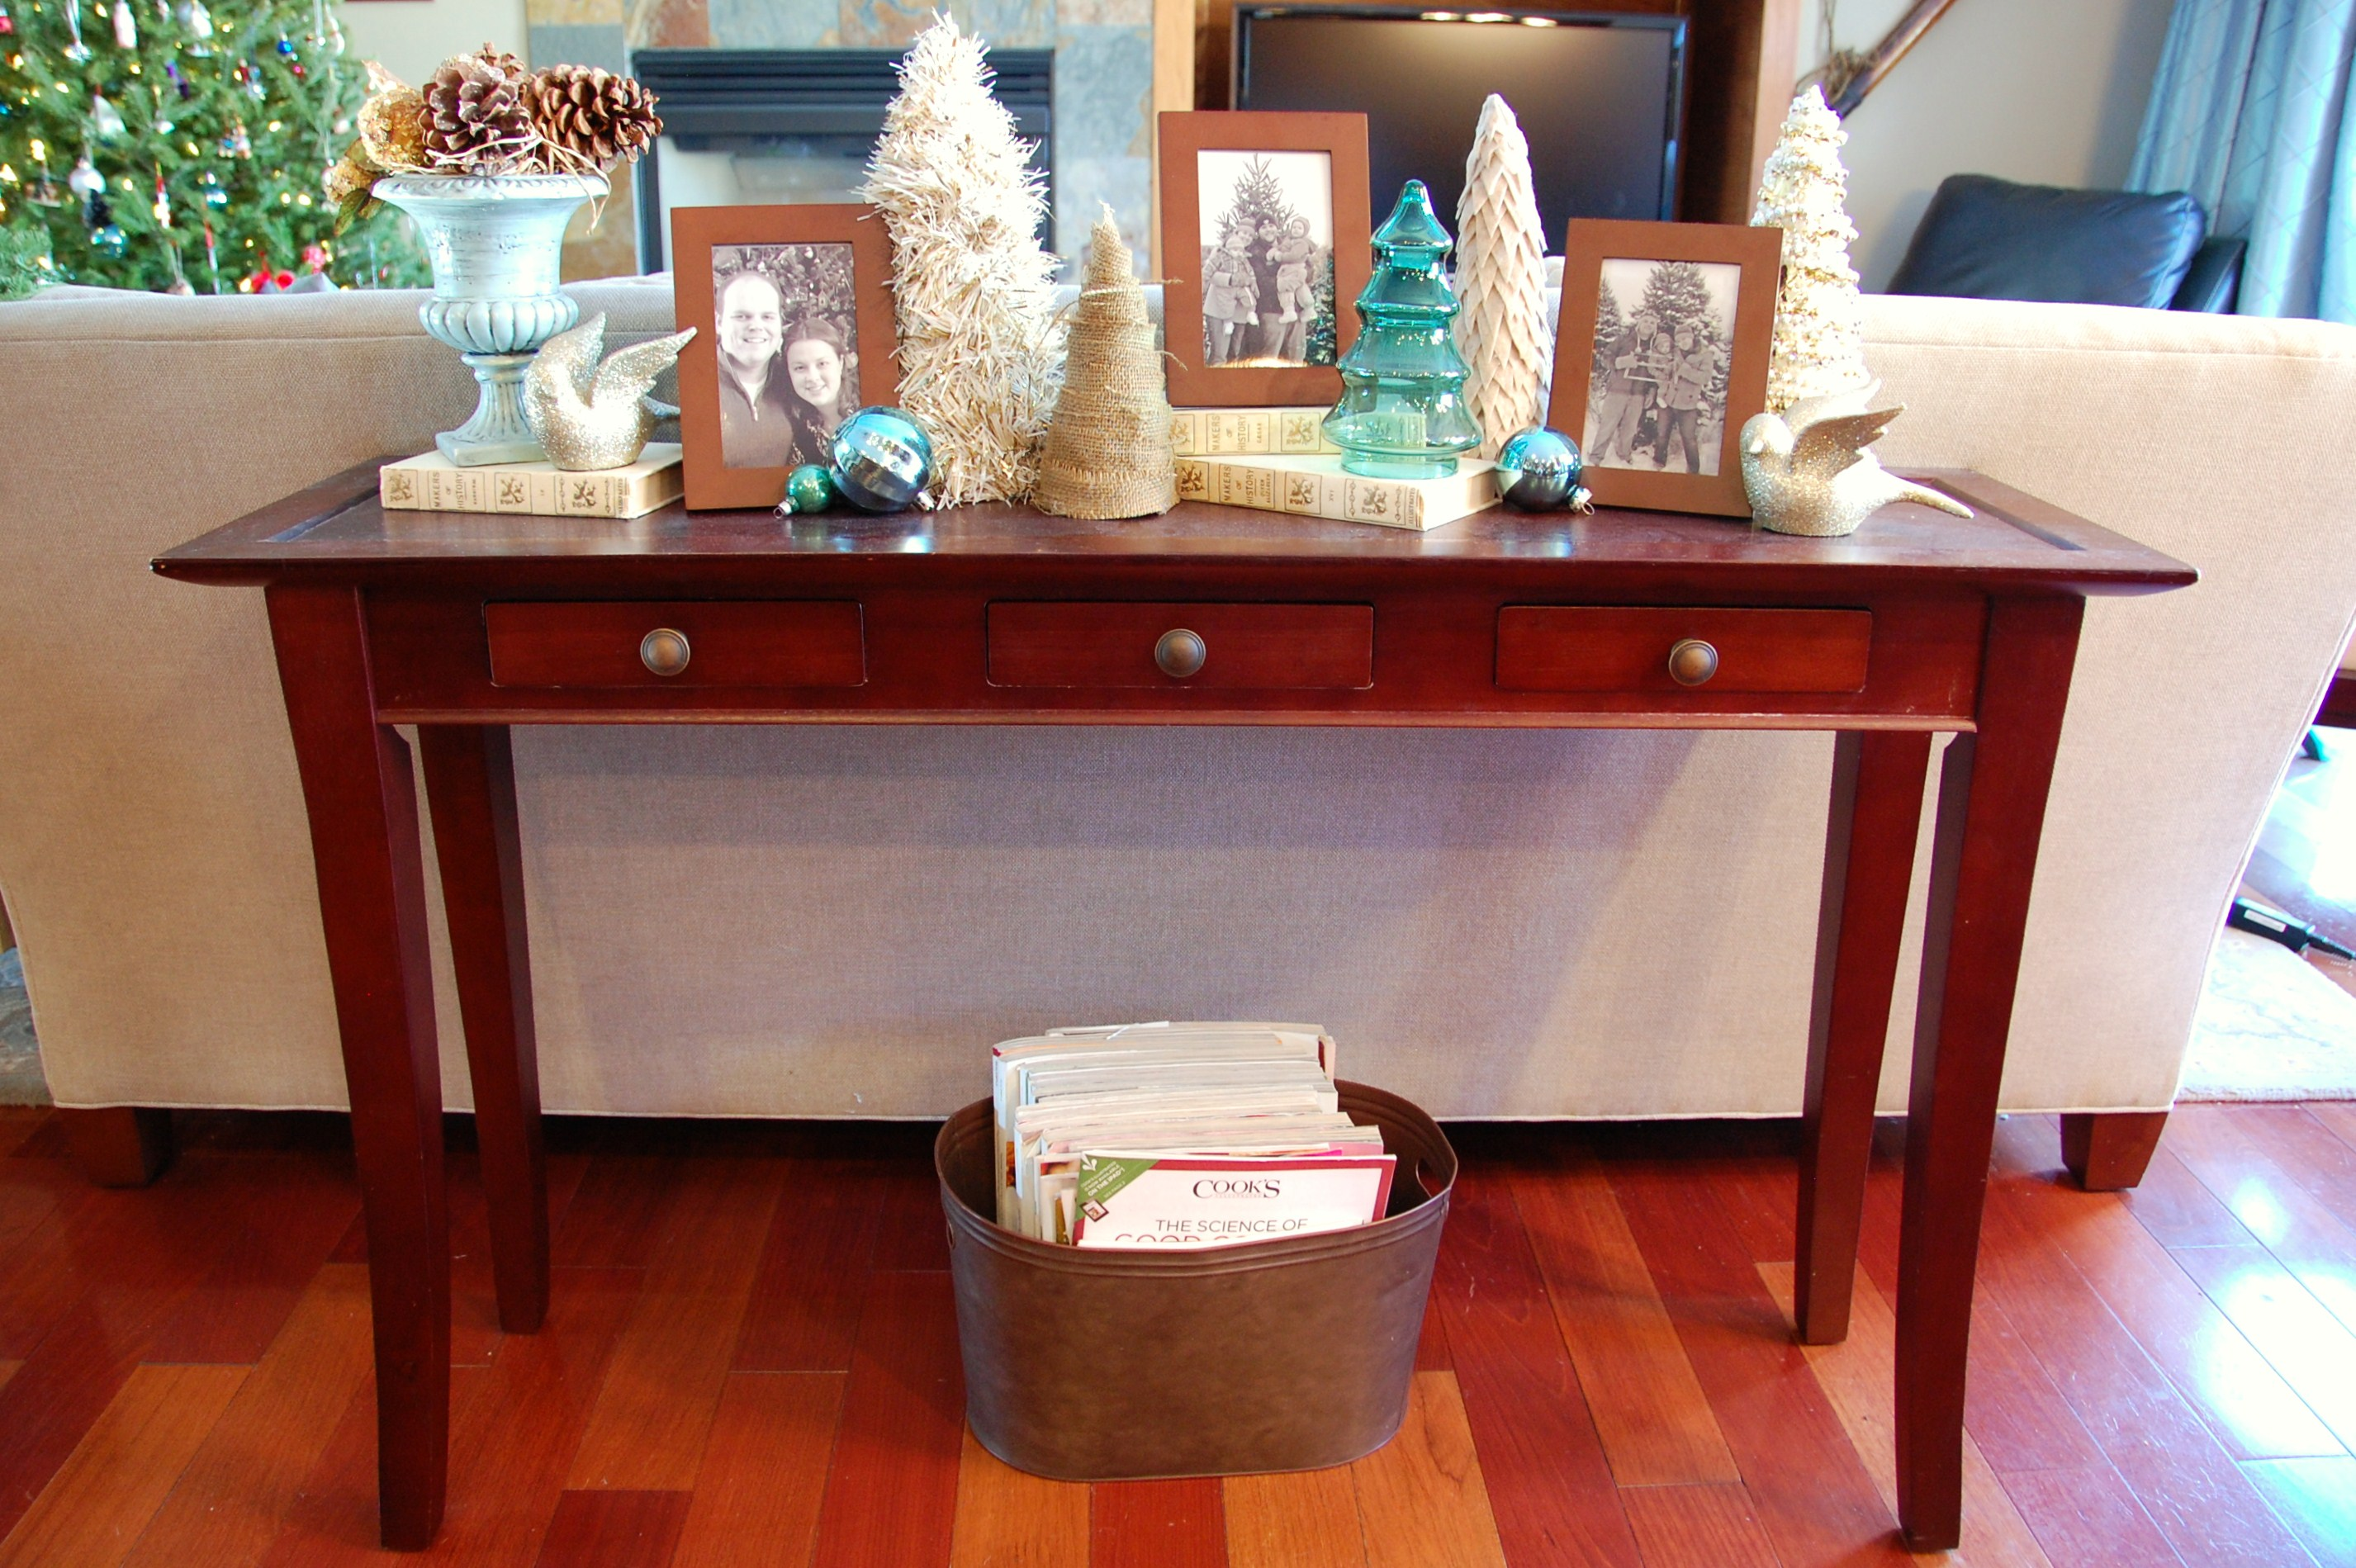 decorating a sofa console table james bed christmas ideas